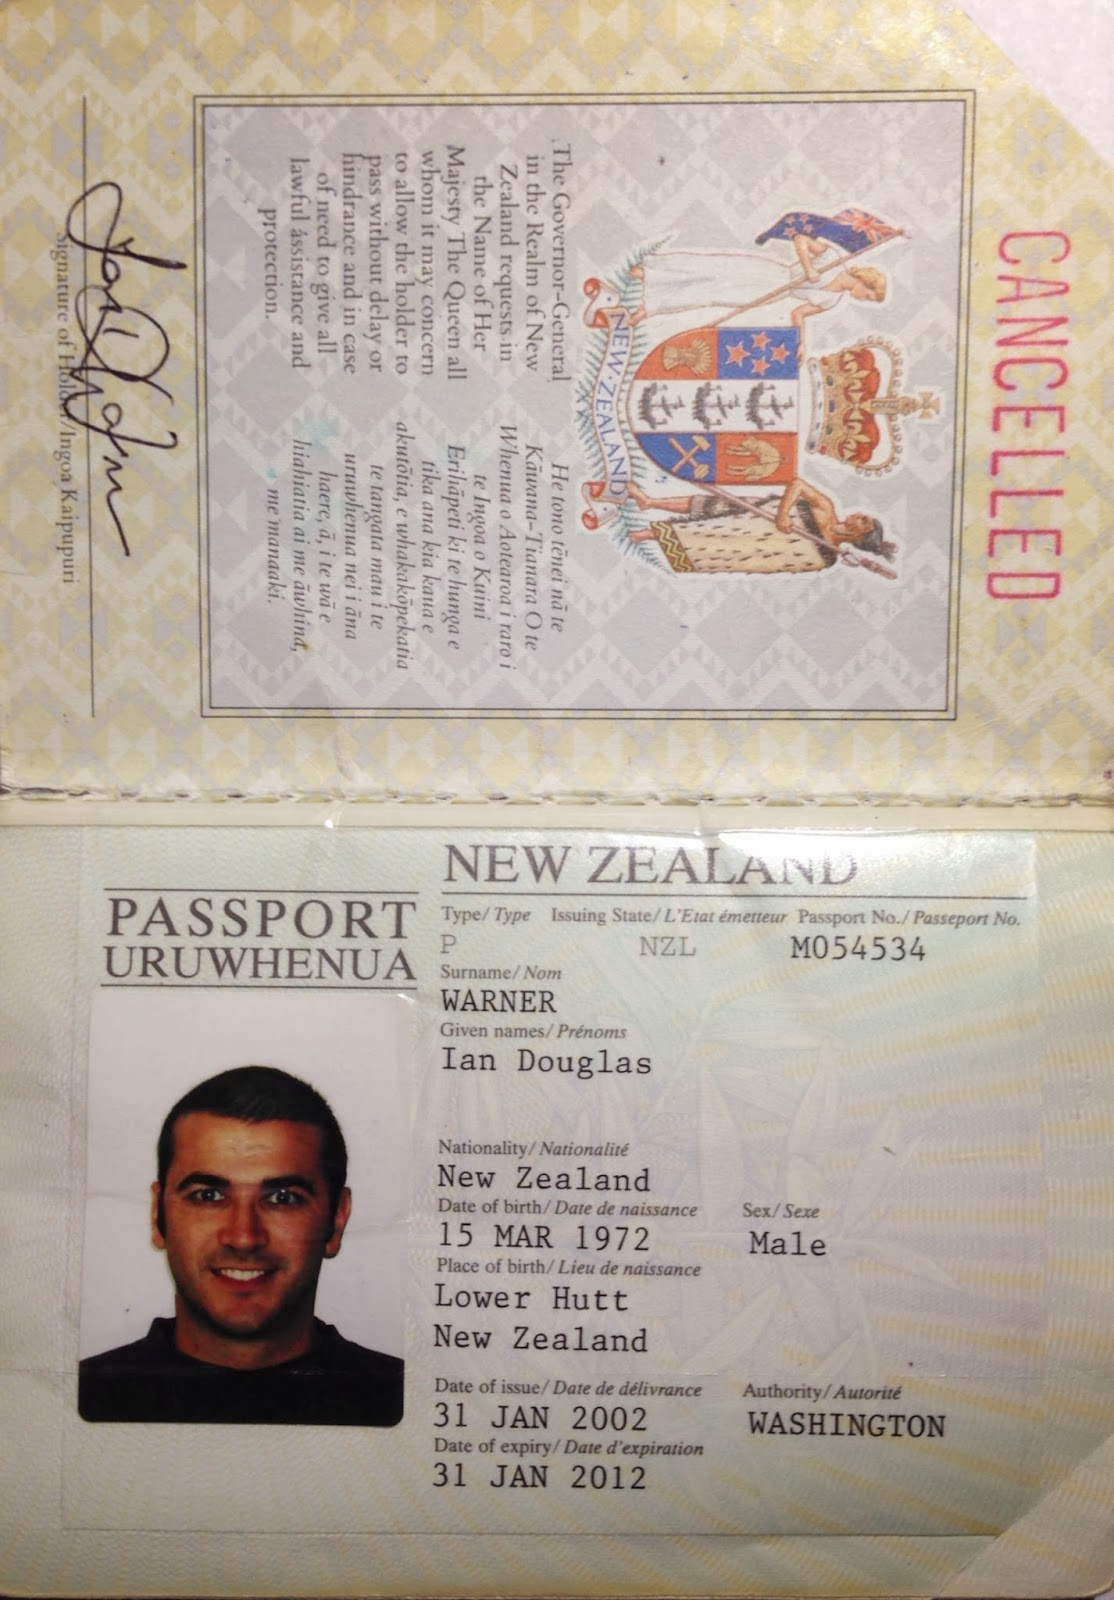 The tattered passport passports the one i used when i left new zealand in 1996 and traveled around europe it has my uk work permit and some great visas from places like egypt romania ccuart Choice Image